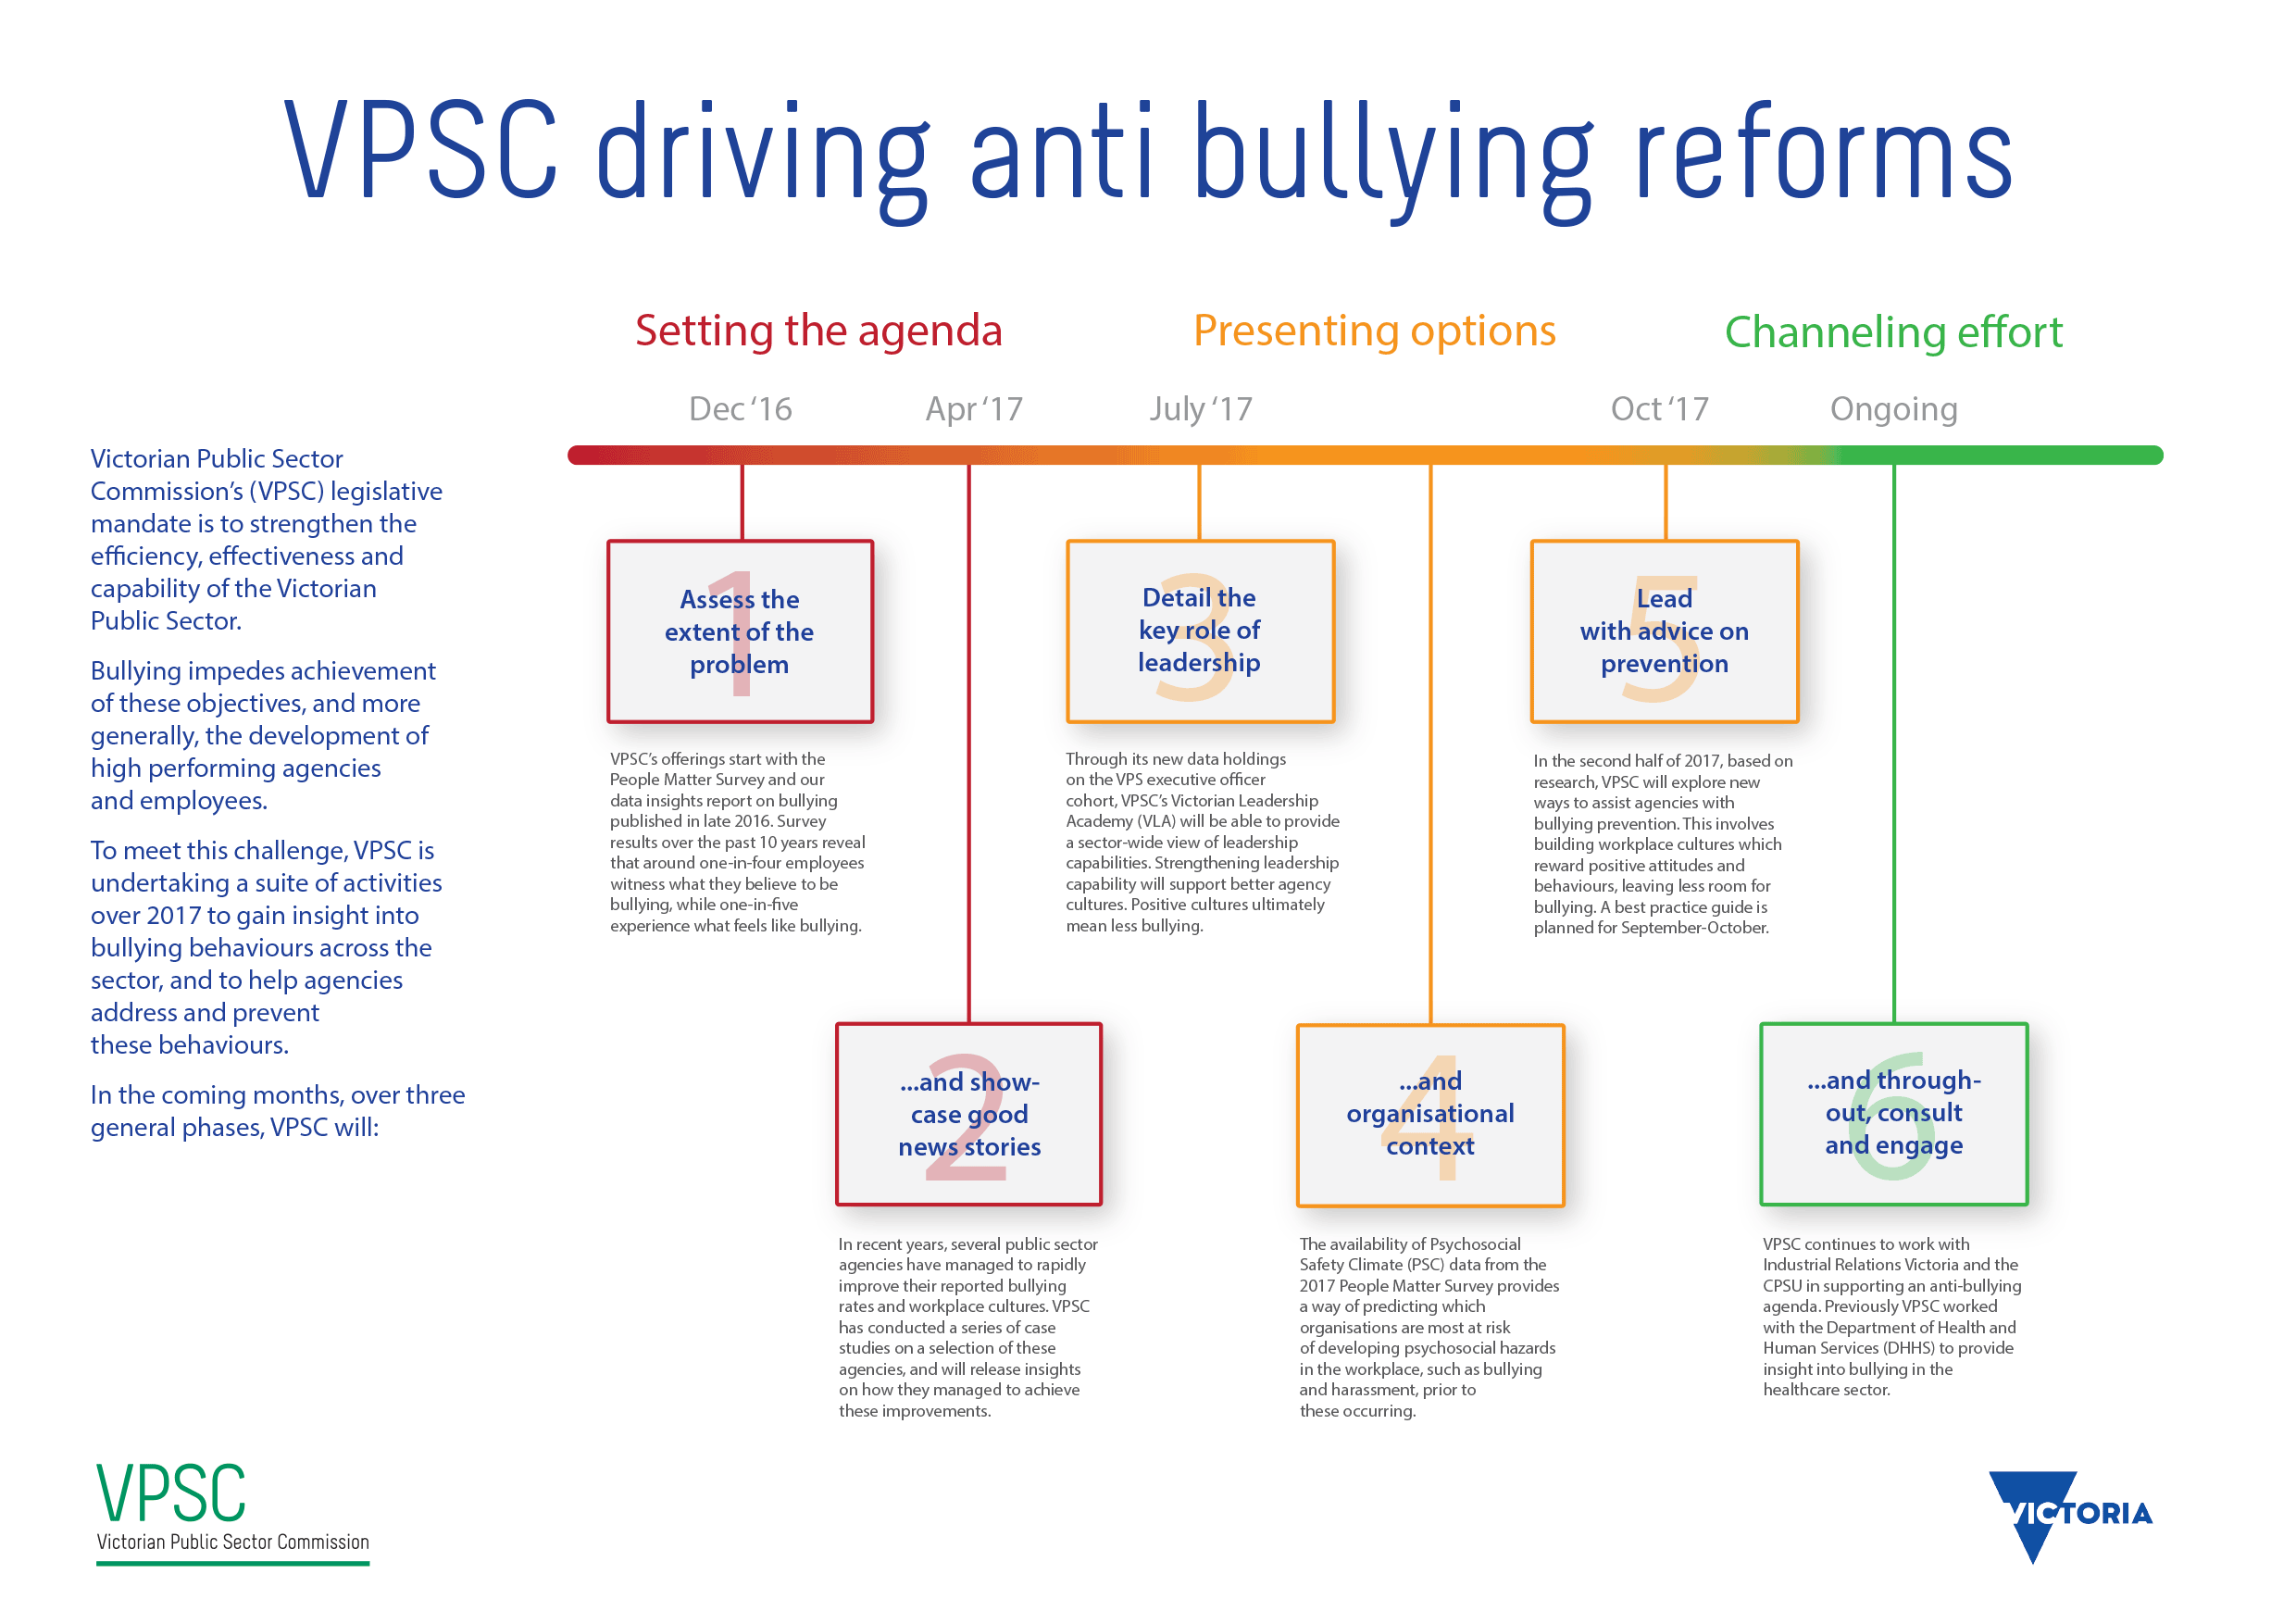 https://vpsc.vic.gov.au/workforce-capability-leadership-and-management/driving-anti-bullying-reforms/driving-anti-bullying-reforms/